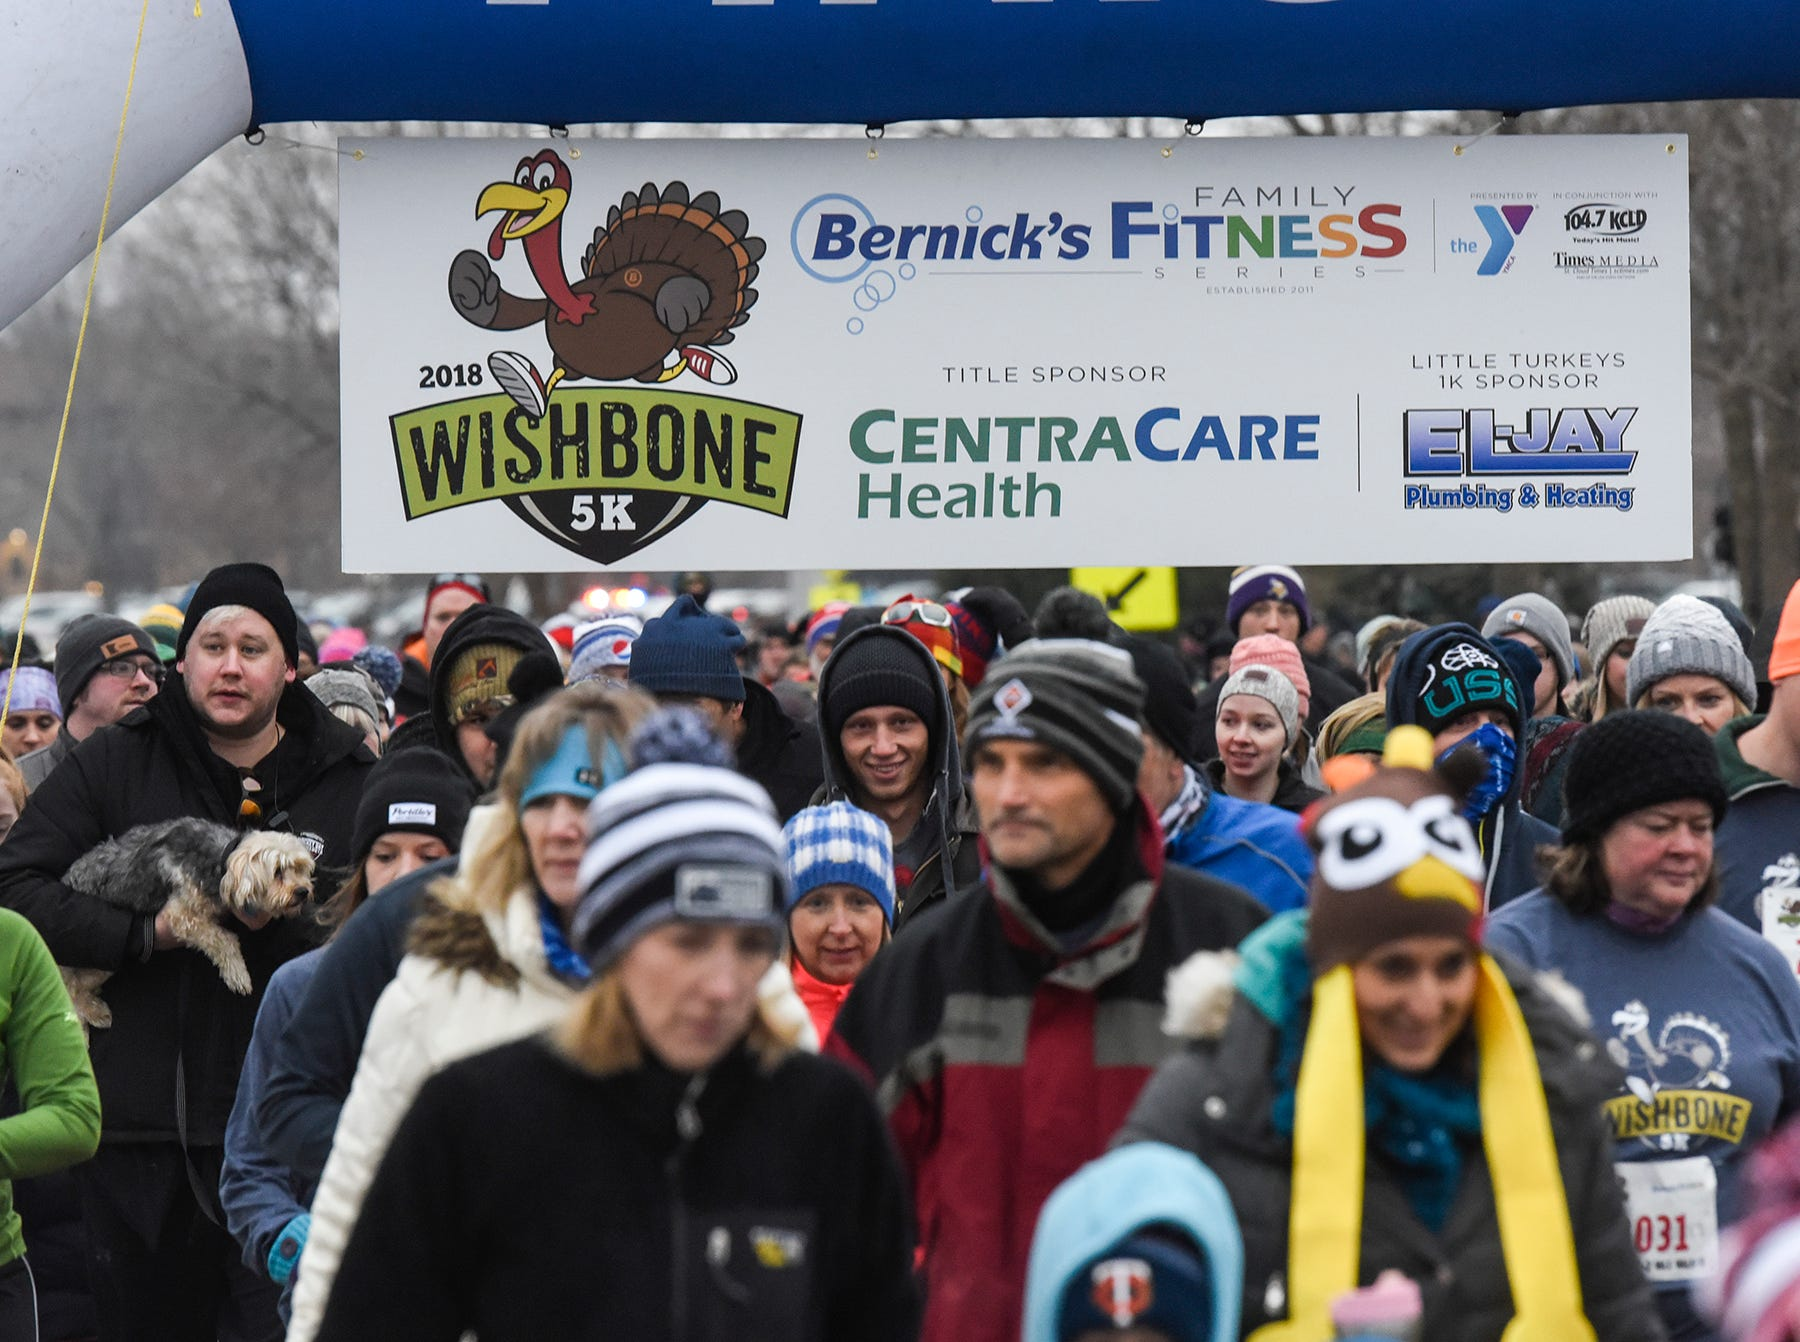 Runners leave the starting line during the Wishbone 5K Thursday, Nov. 22, at the St. Cloud Area Family YMCA.